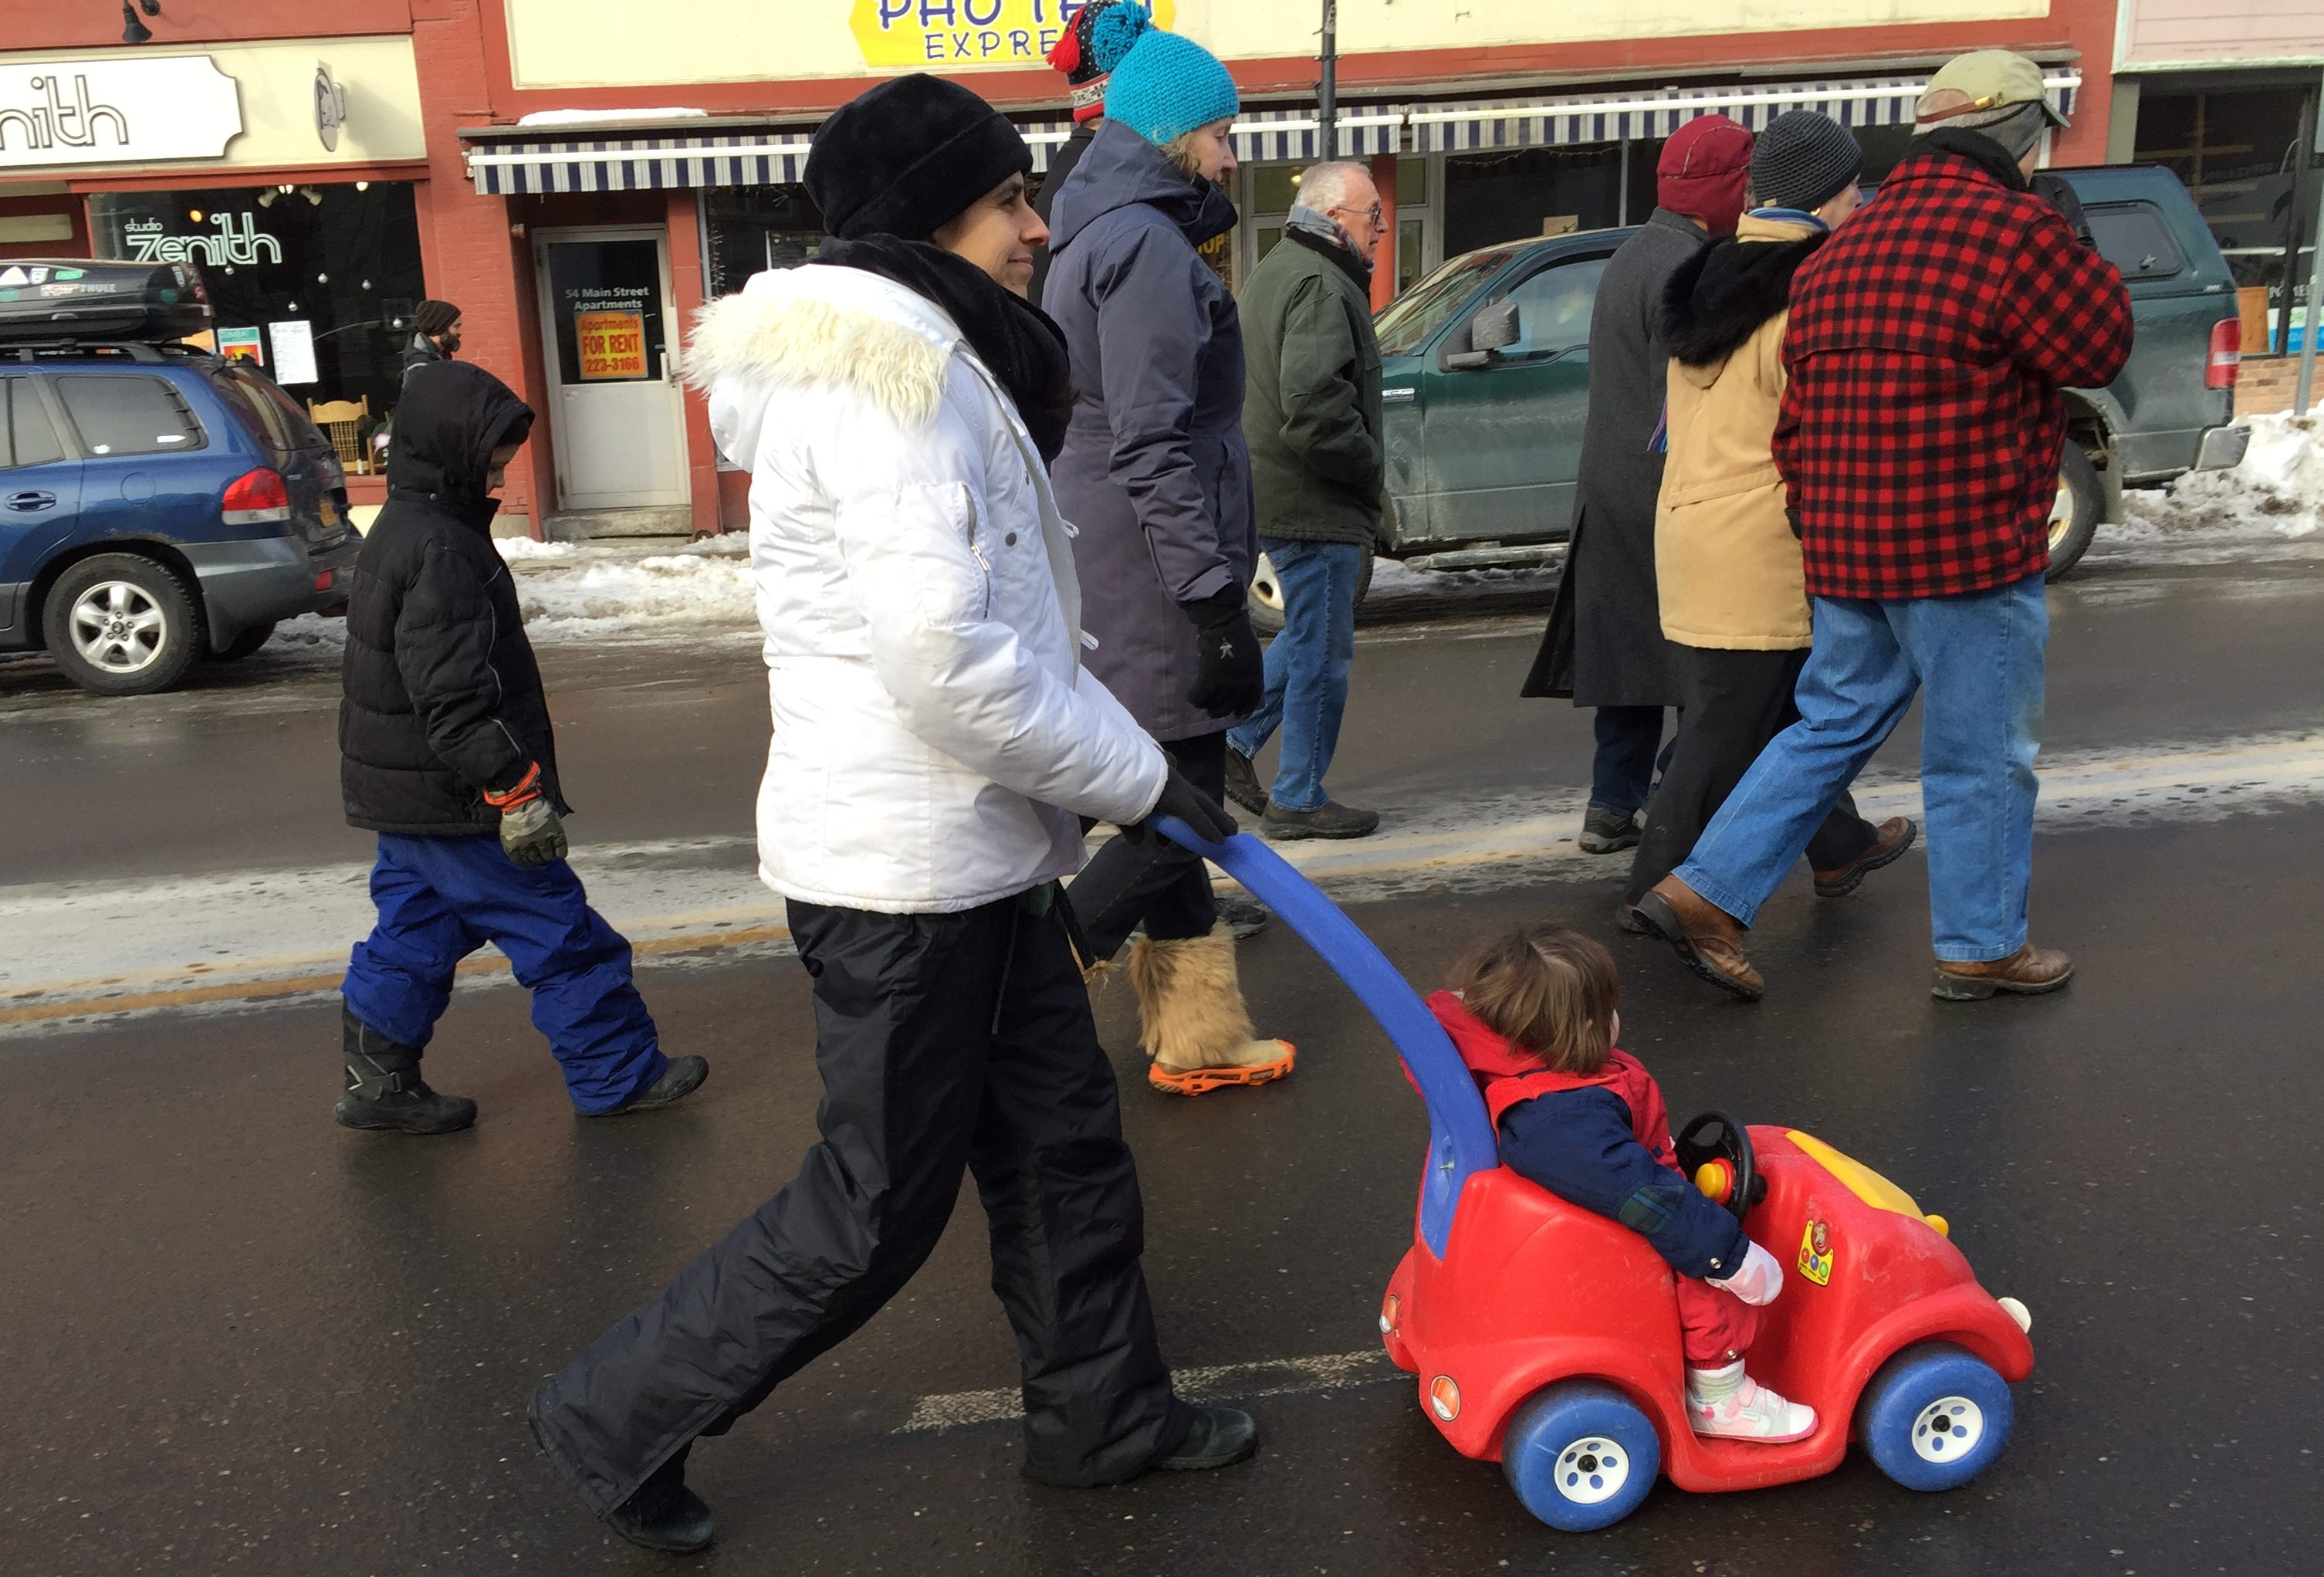 Patty Lawson of Fairfax rolls her child down Main Street in Montpelier as part of an anti-abortion march and rally in the capital on Jan. 26, 2019.